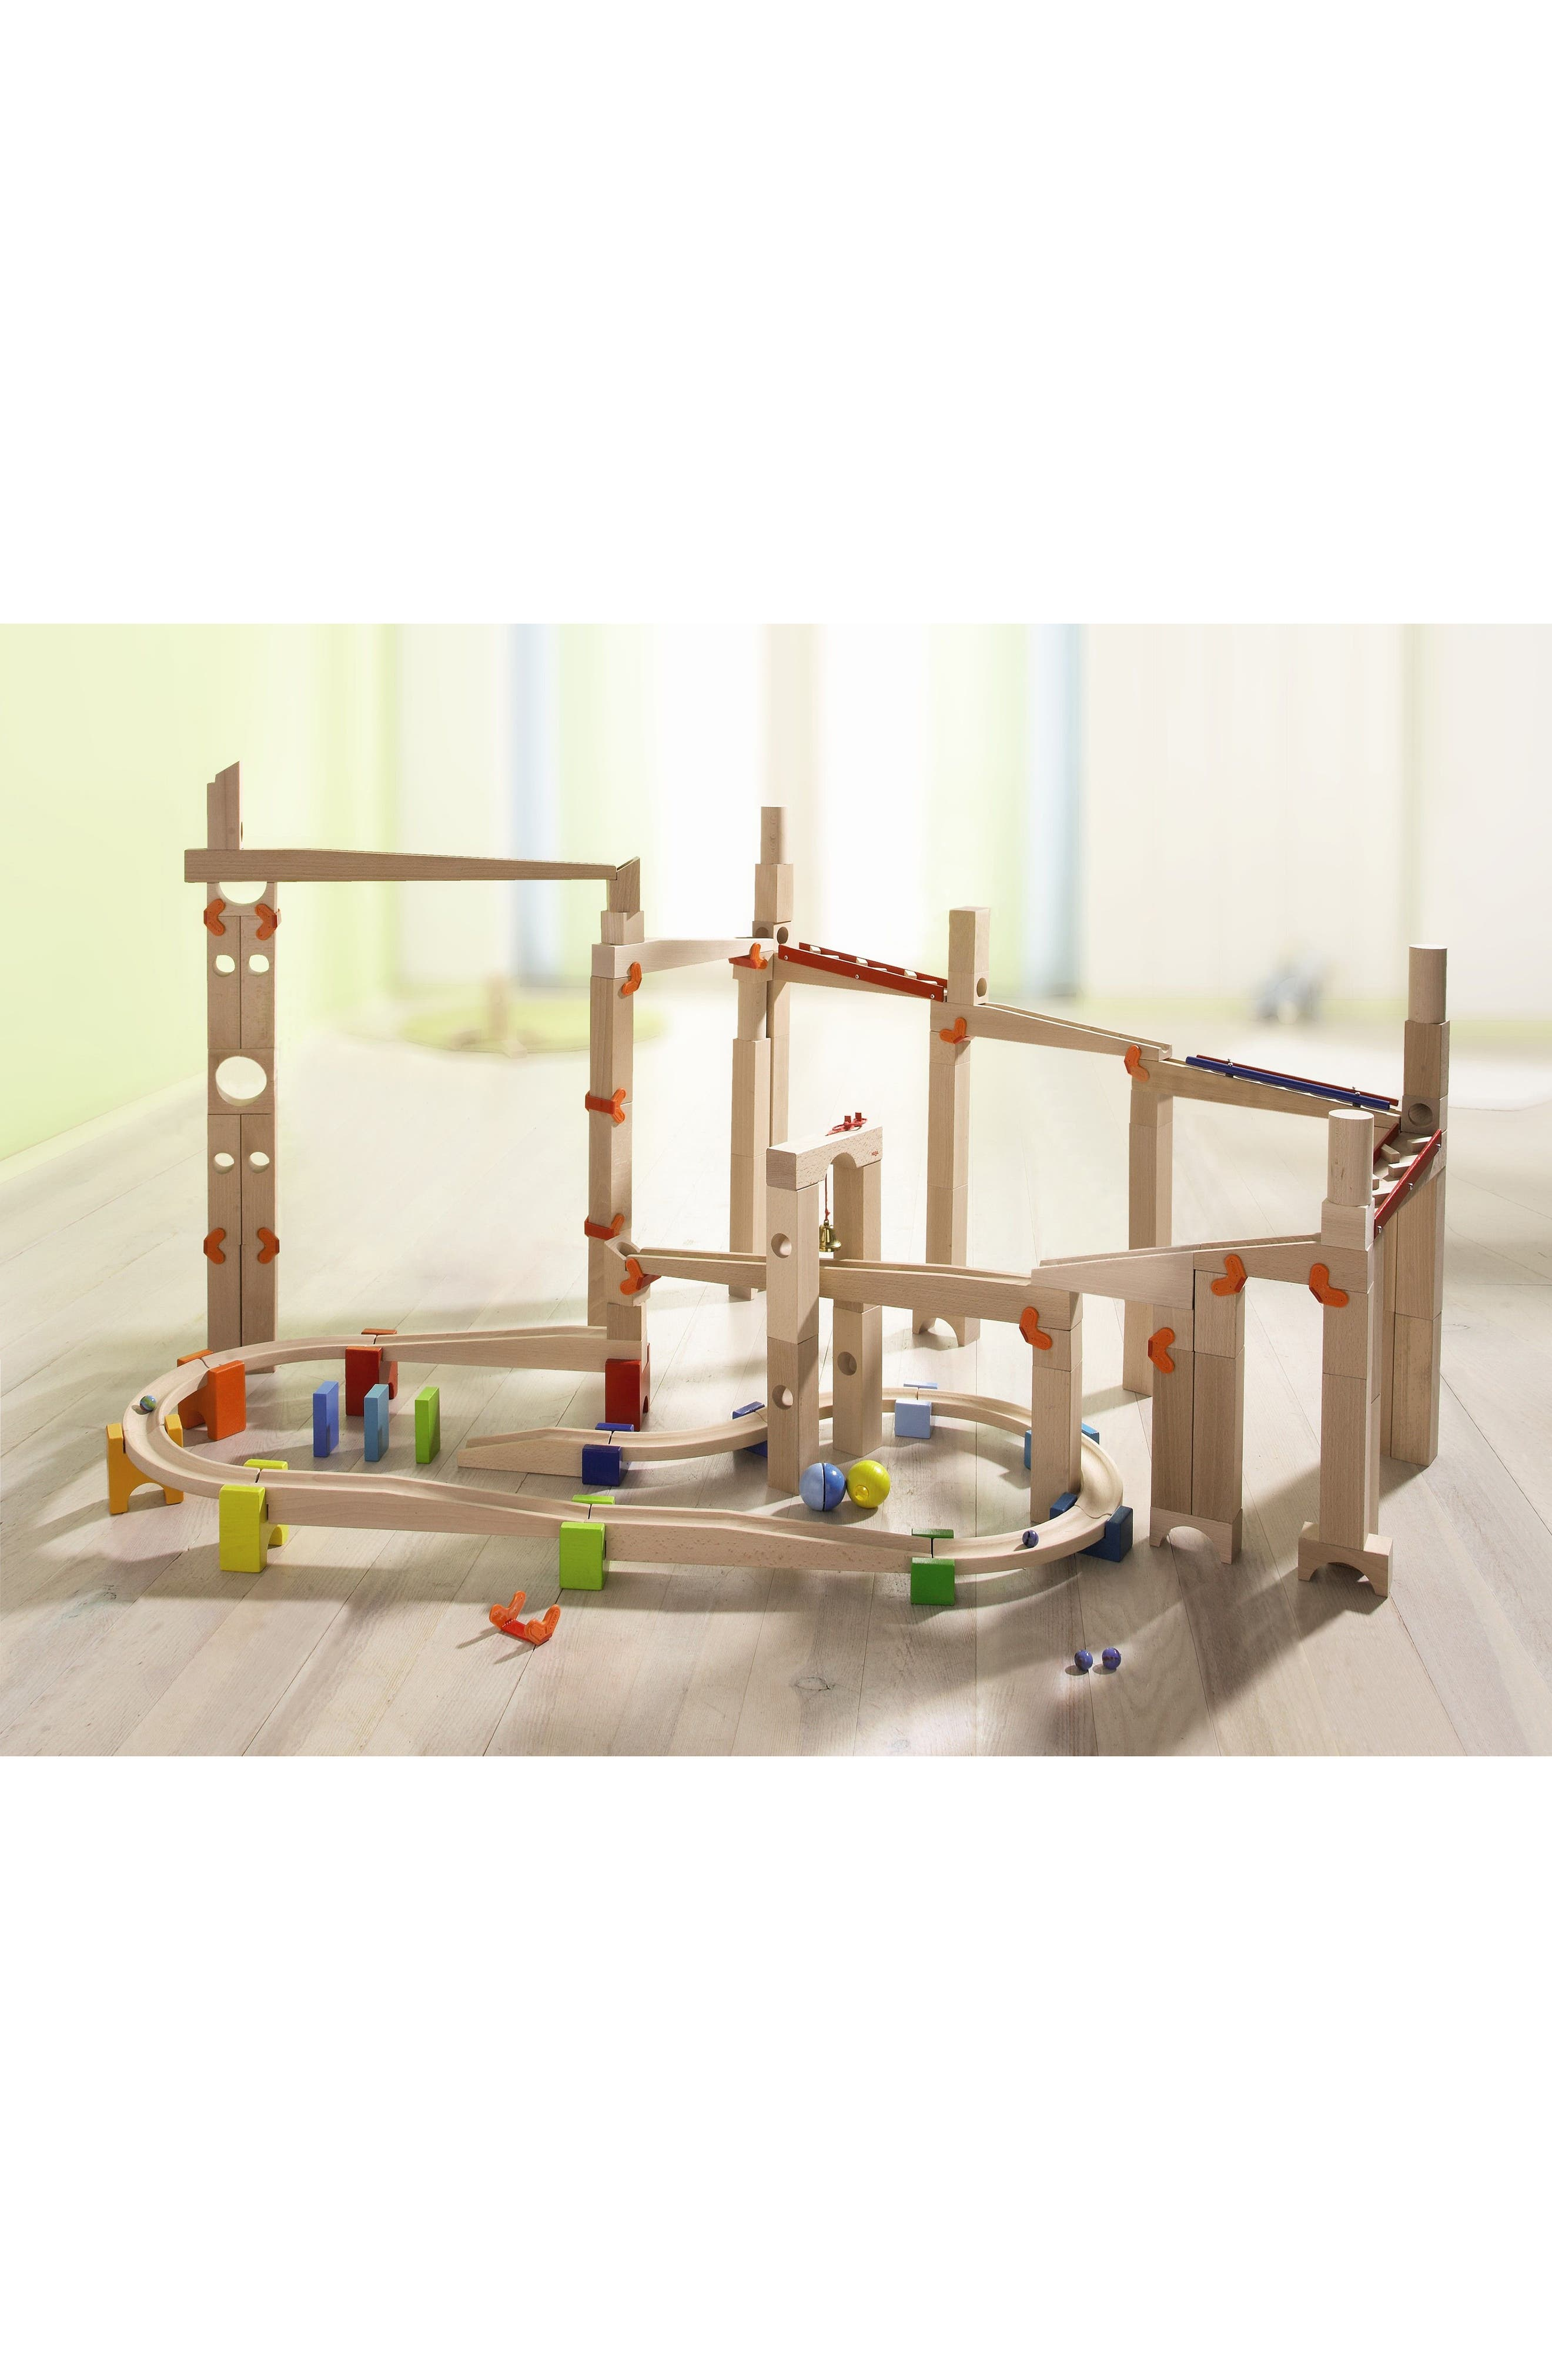 My First Ball Track - 30-Piece Large Basic Pack Construction Set,                             Alternate thumbnail 2, color,                             Brown